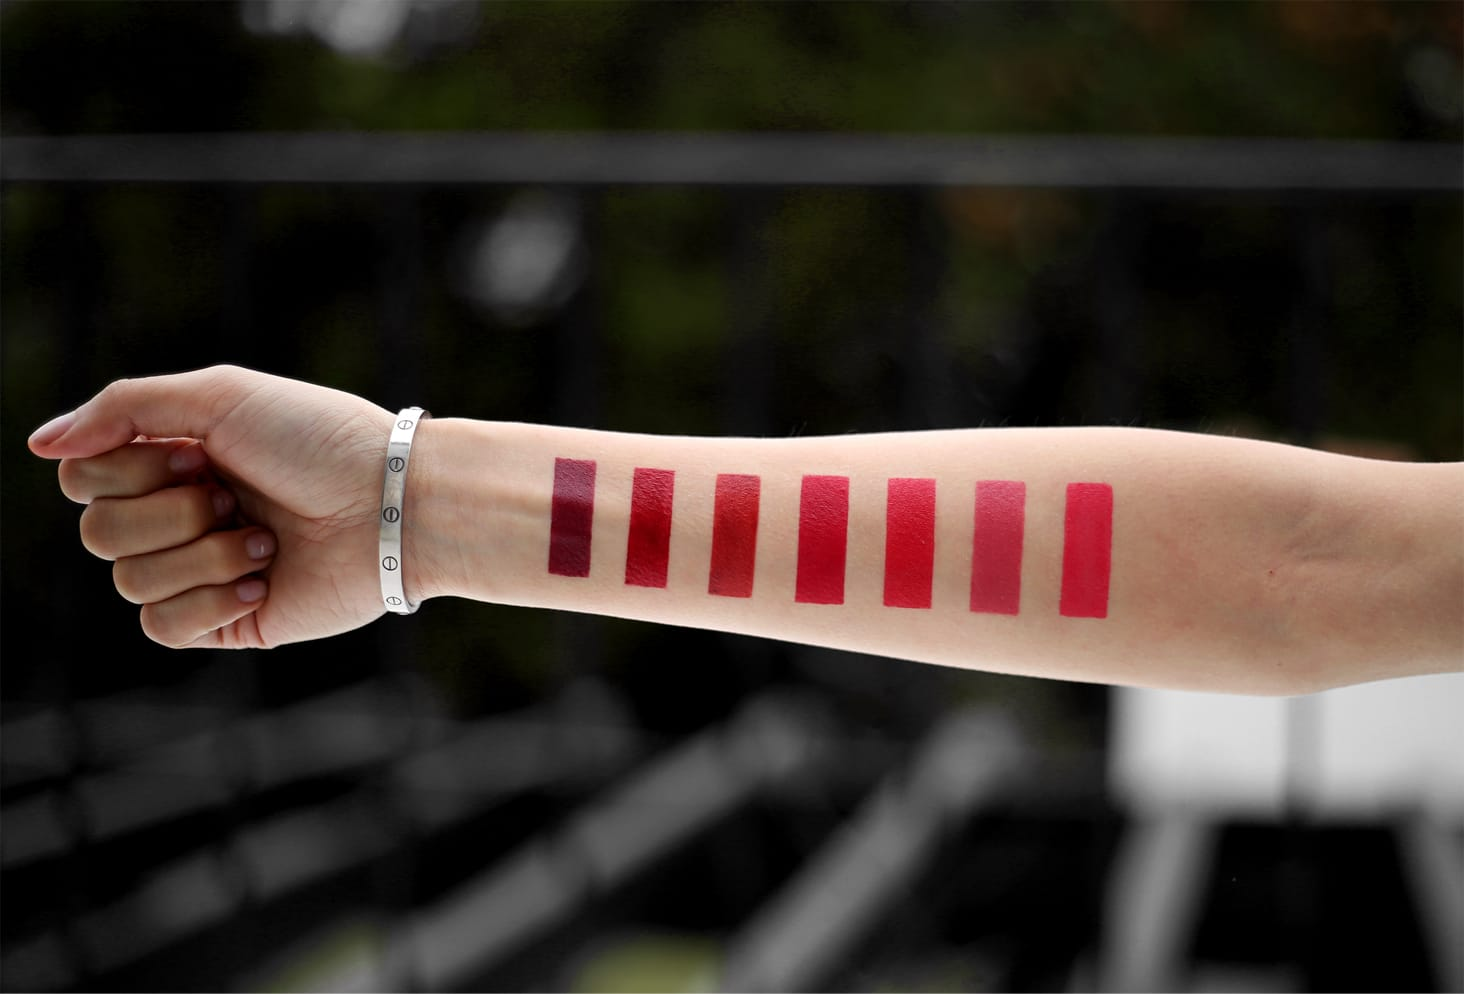 A makeup artist holds out her arm, on which perfectly rectangular lipstick swatches have been drawn.